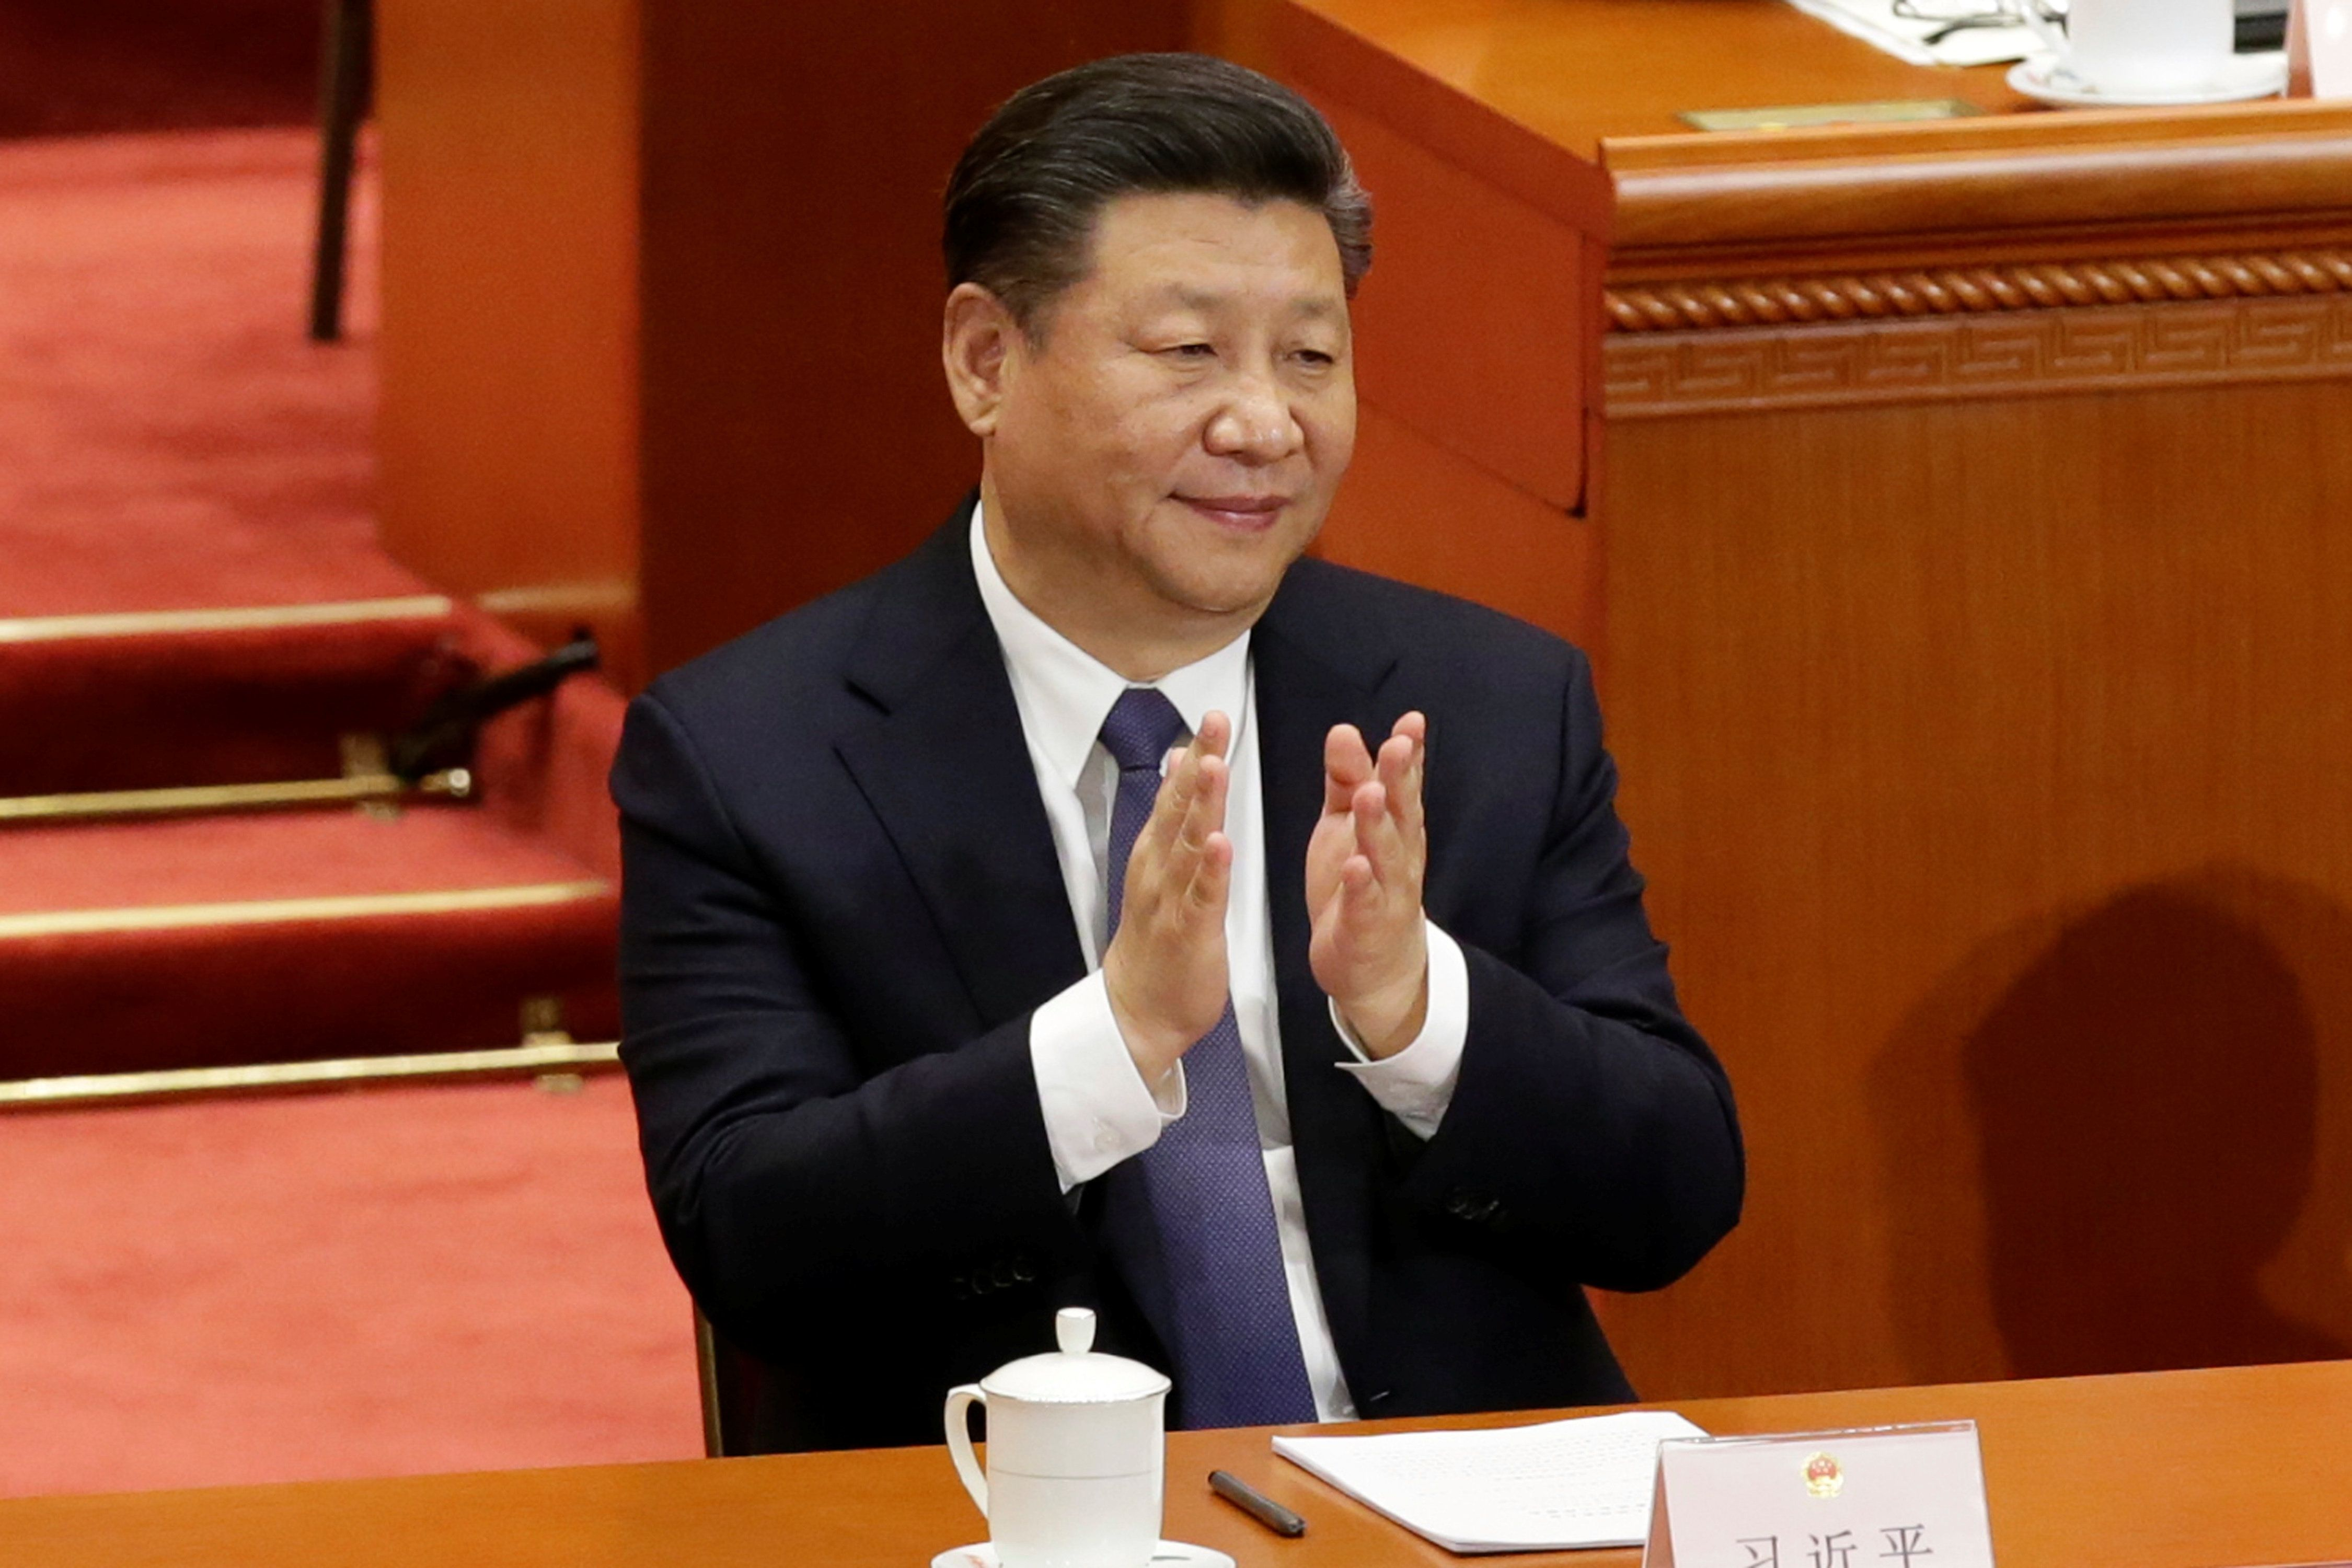 Xi Jinping can stay in office indeffinitely